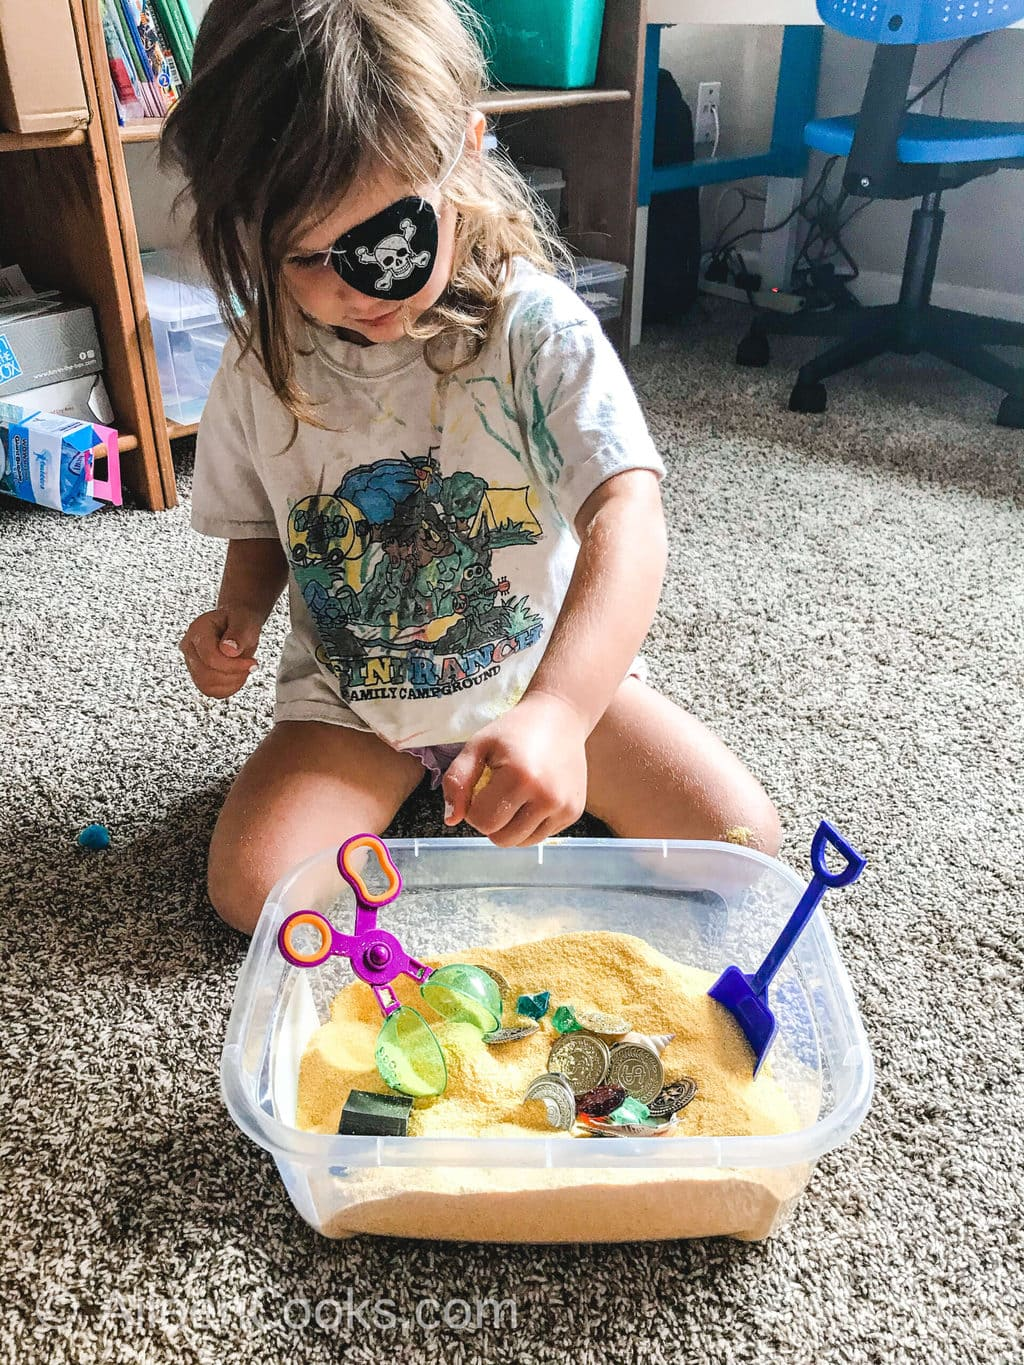 A little girl playing with a pirate themed sensory box and wearing a pirate eye patch.